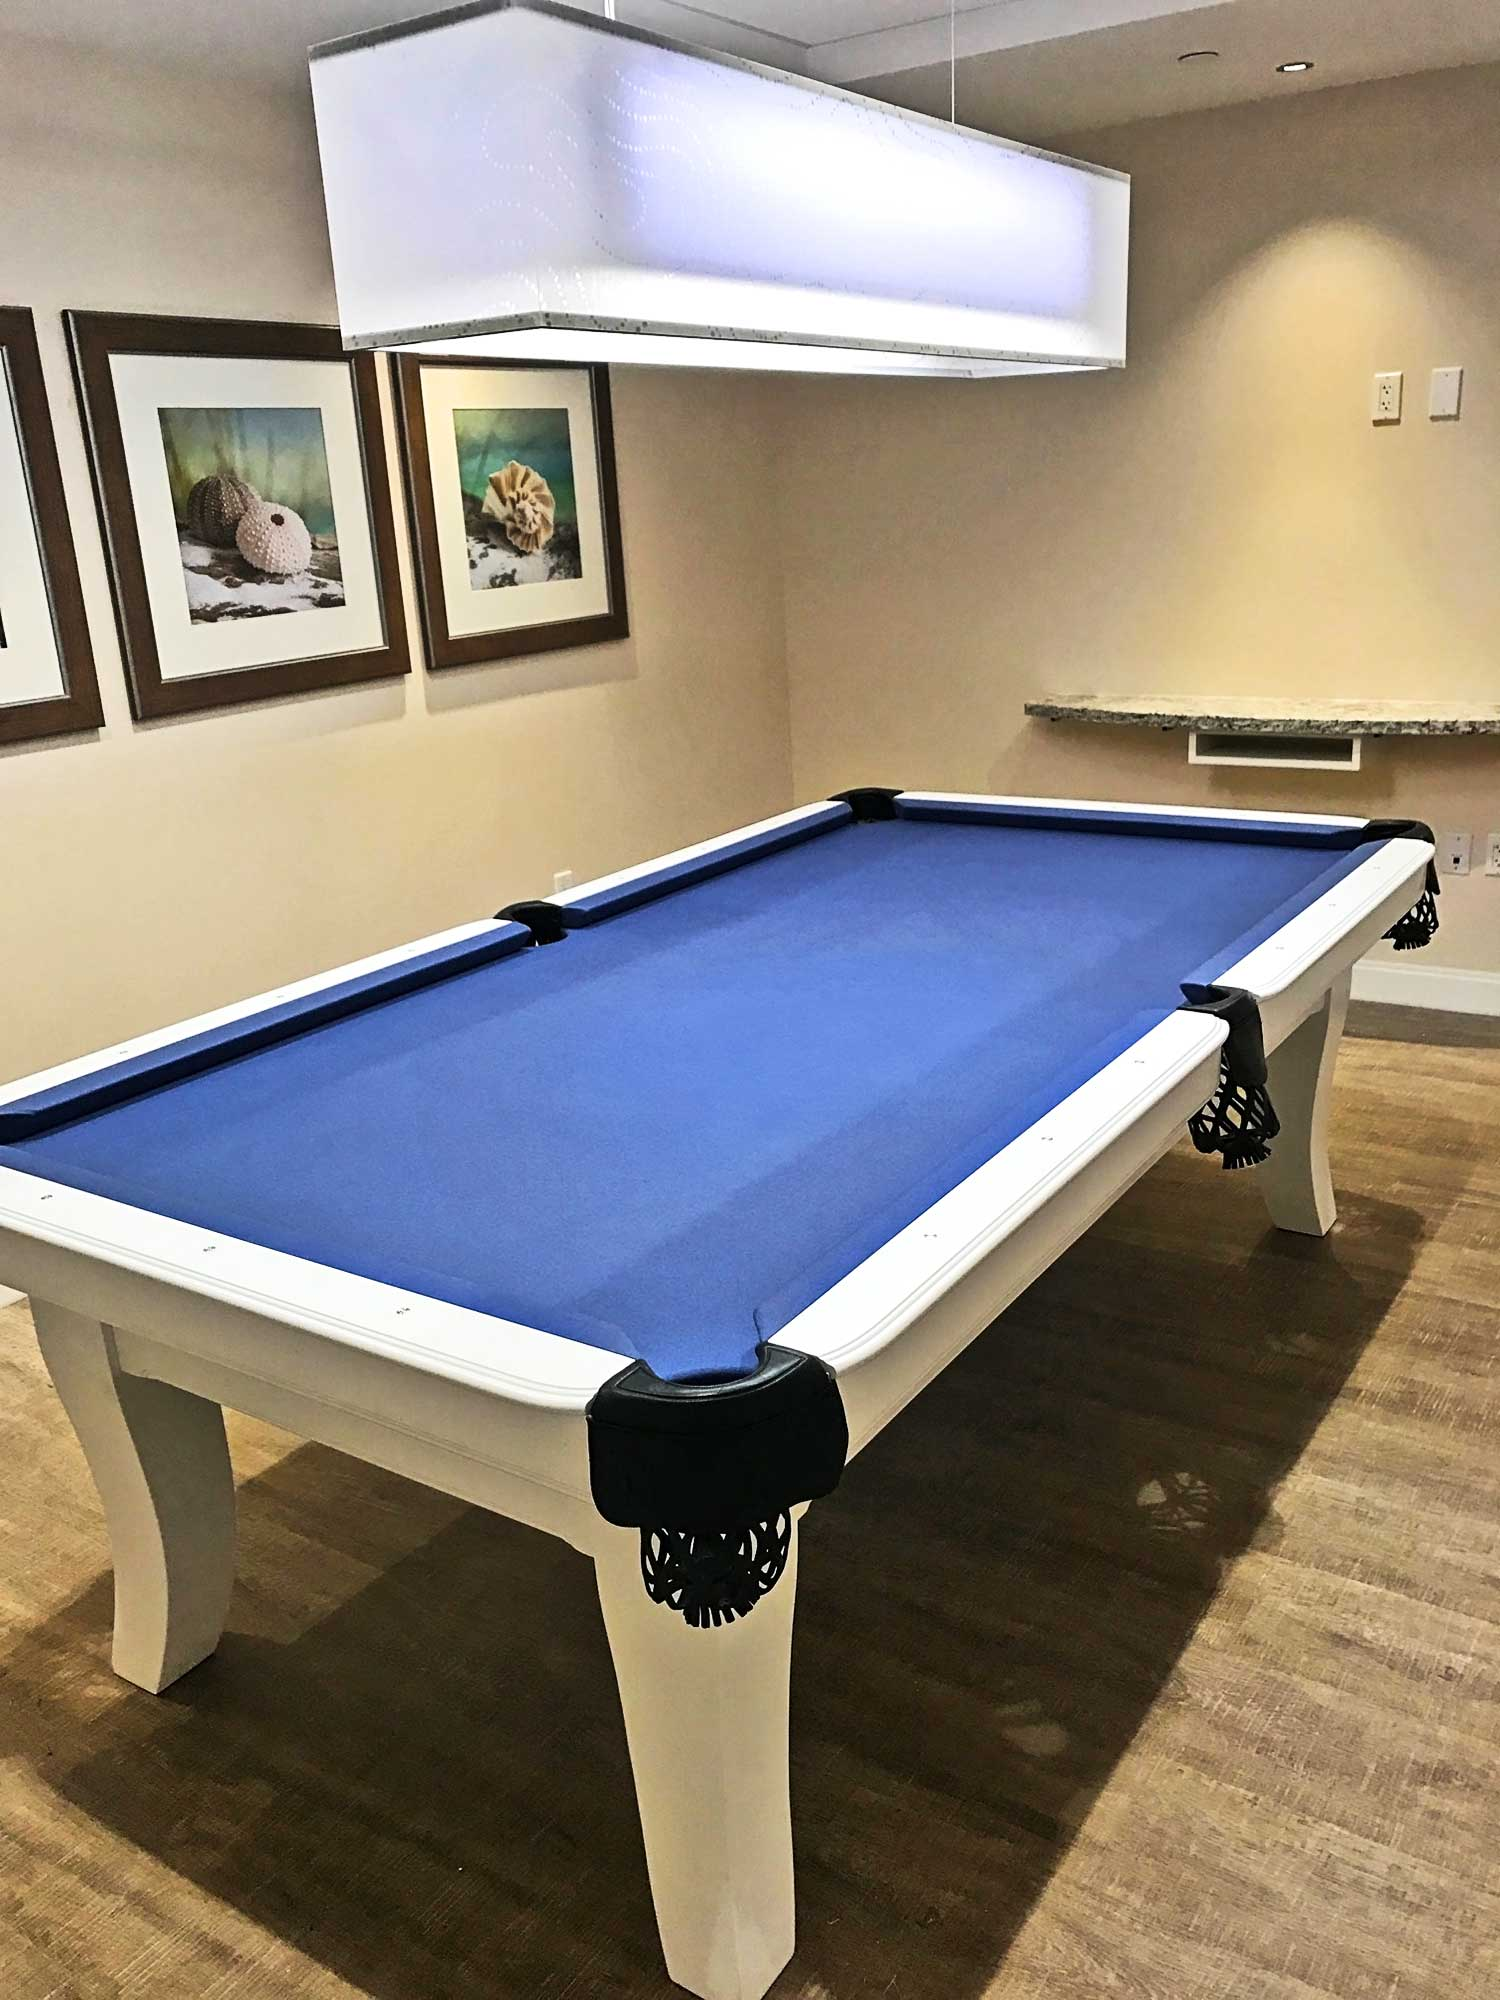 Pool table at White Sands